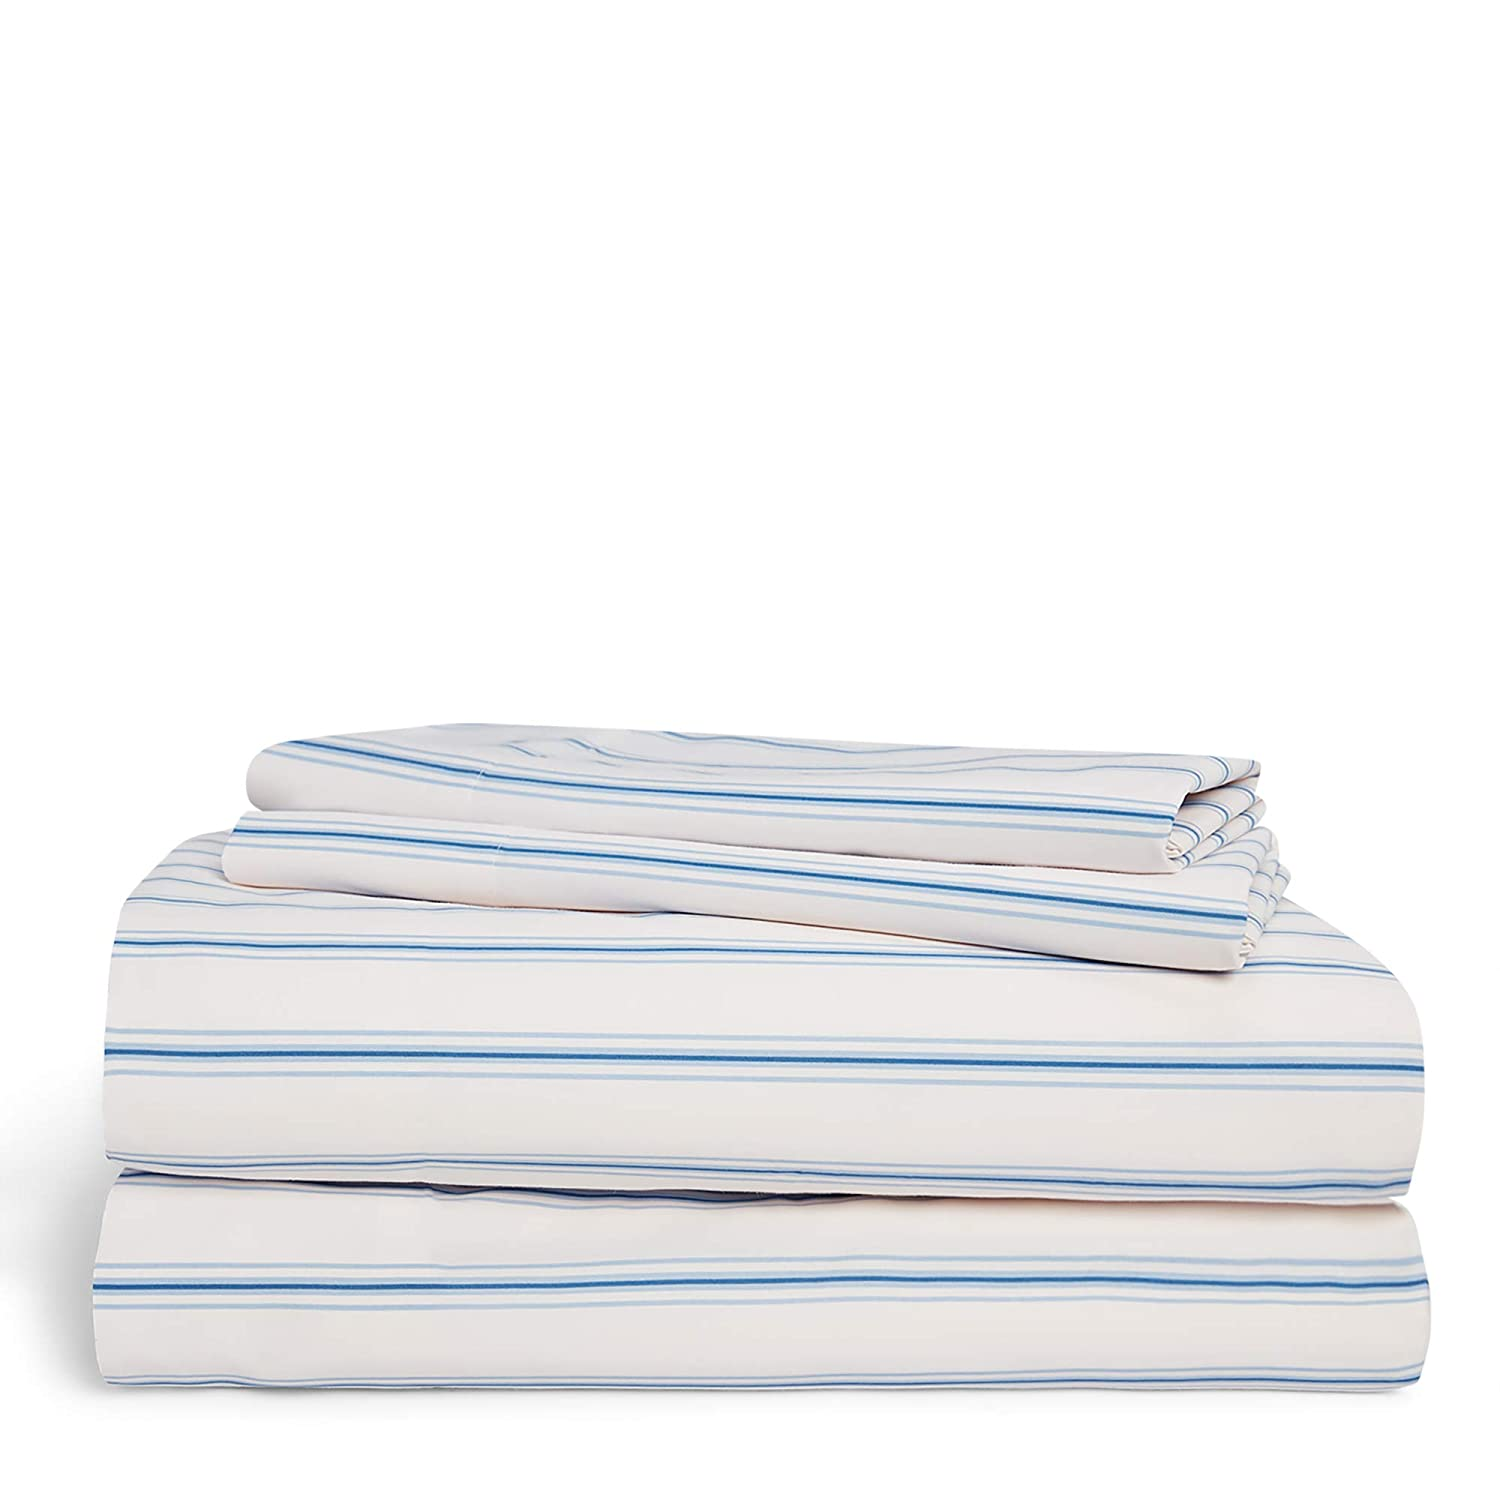 Chaps Home Shrewsbury Stripe 60% Cotton/40% Poly Printed Sheets-200 Thread Count Bed Sheet Set-15 Inches Deep Pocket (King), King, Blue and Cream